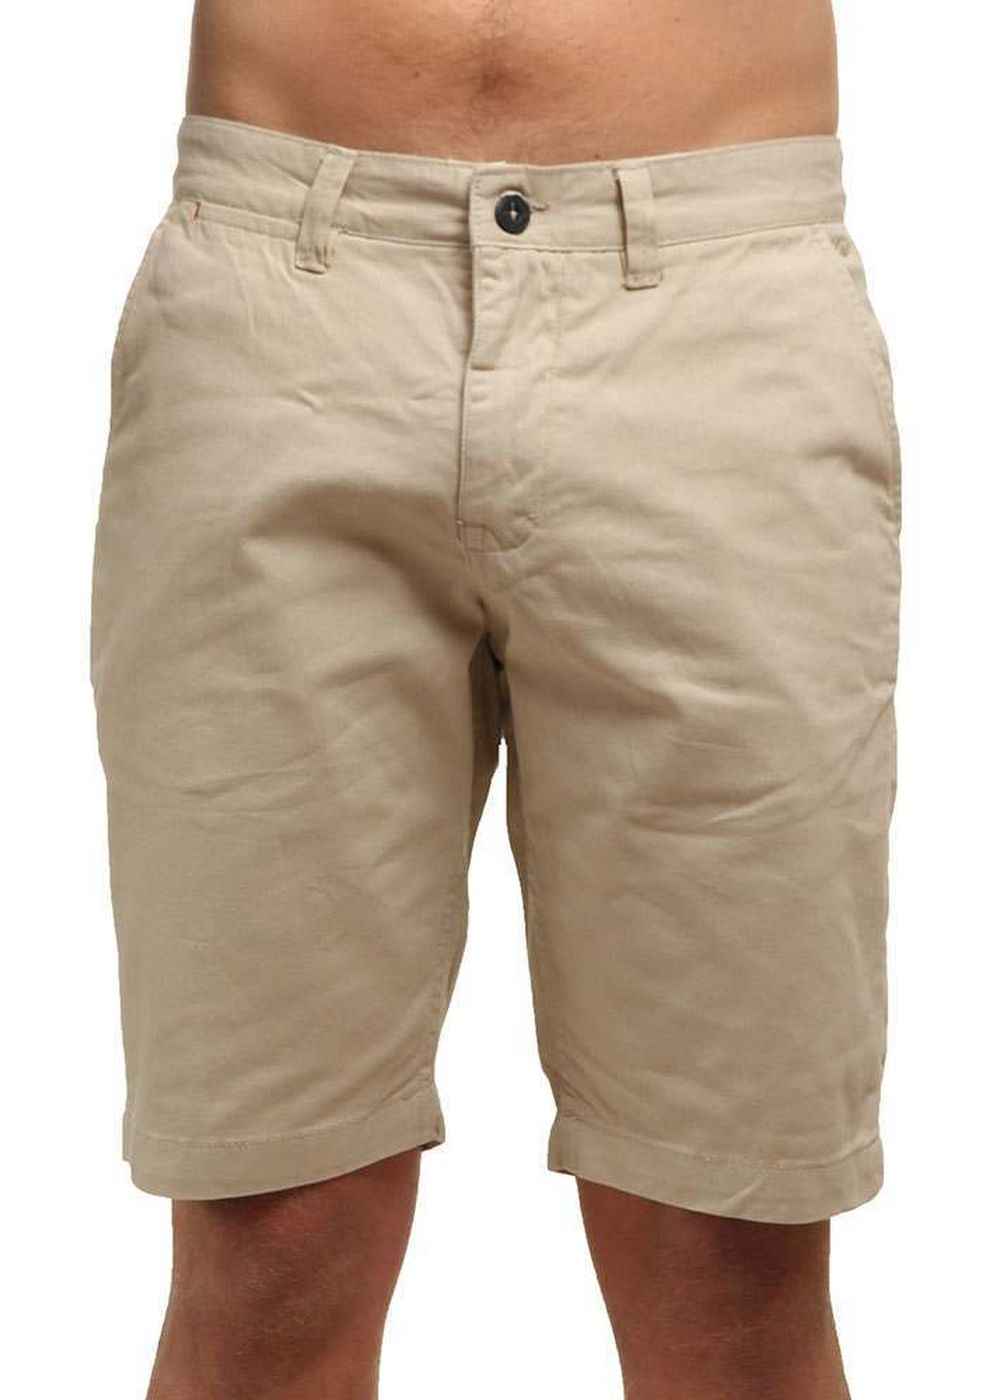 blue-tide-classic-chino-shorts-peyote